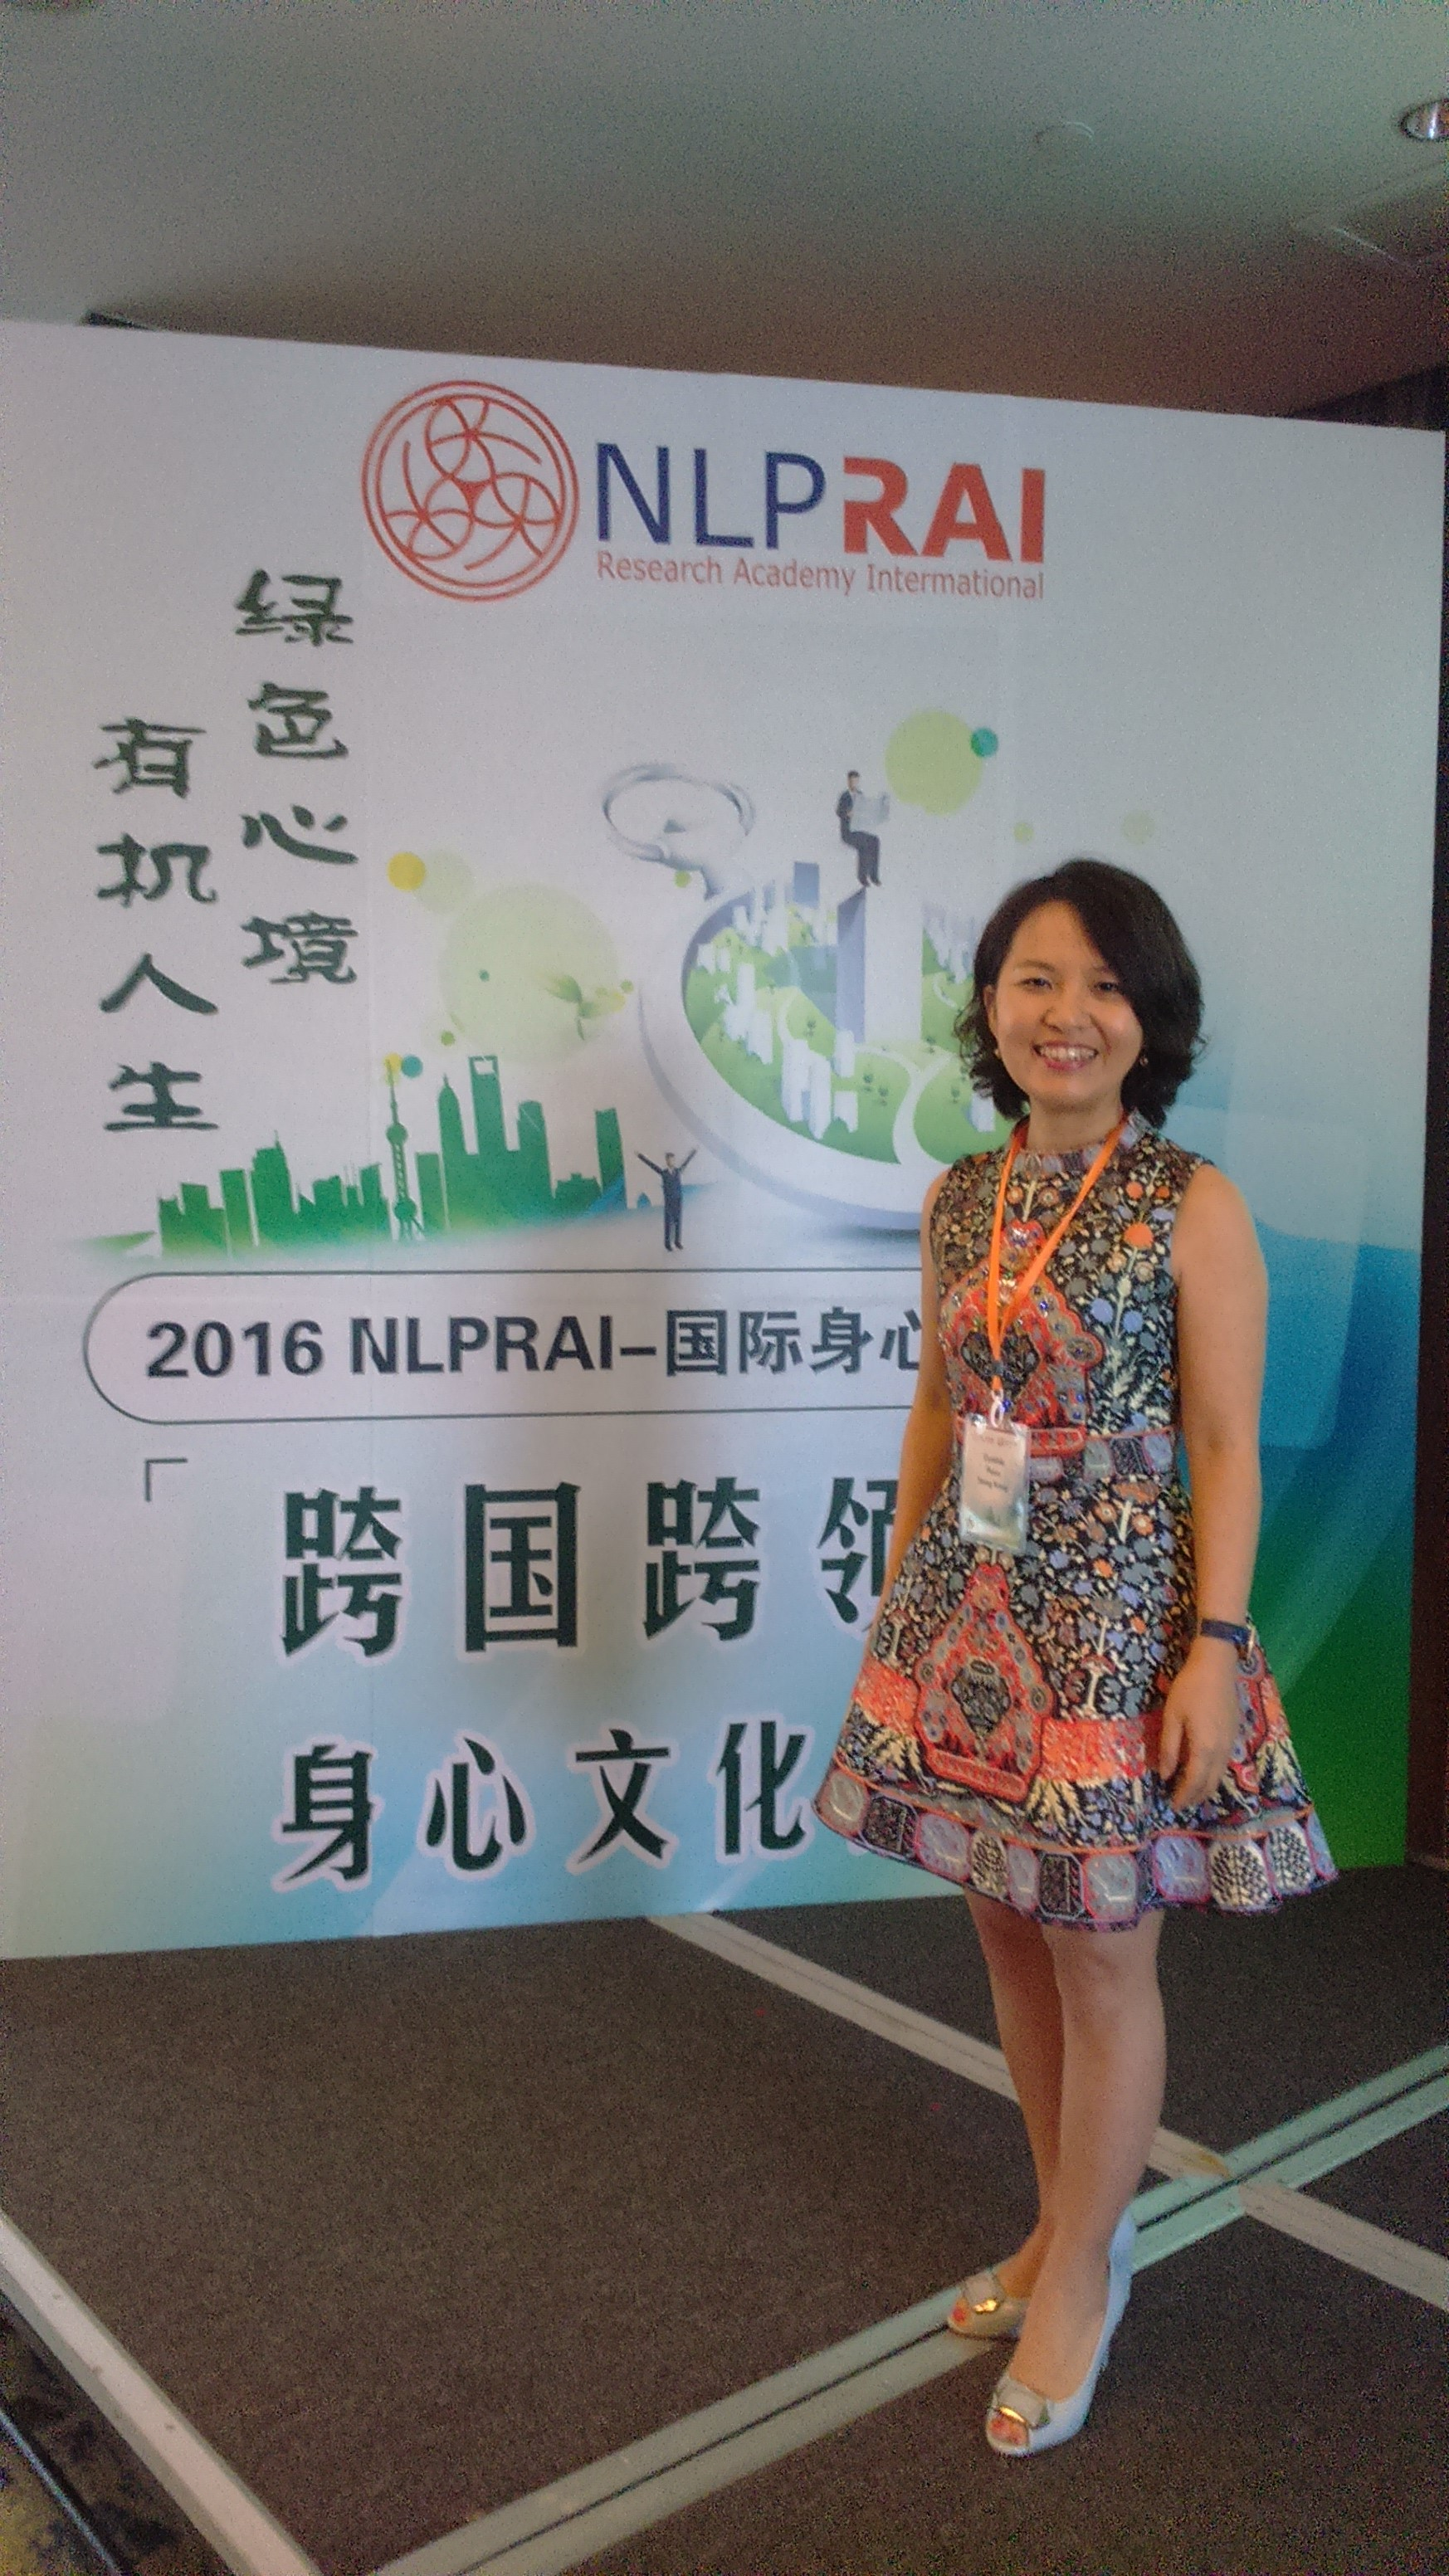 NLPRAI Conf in Shanghai Sept 2016